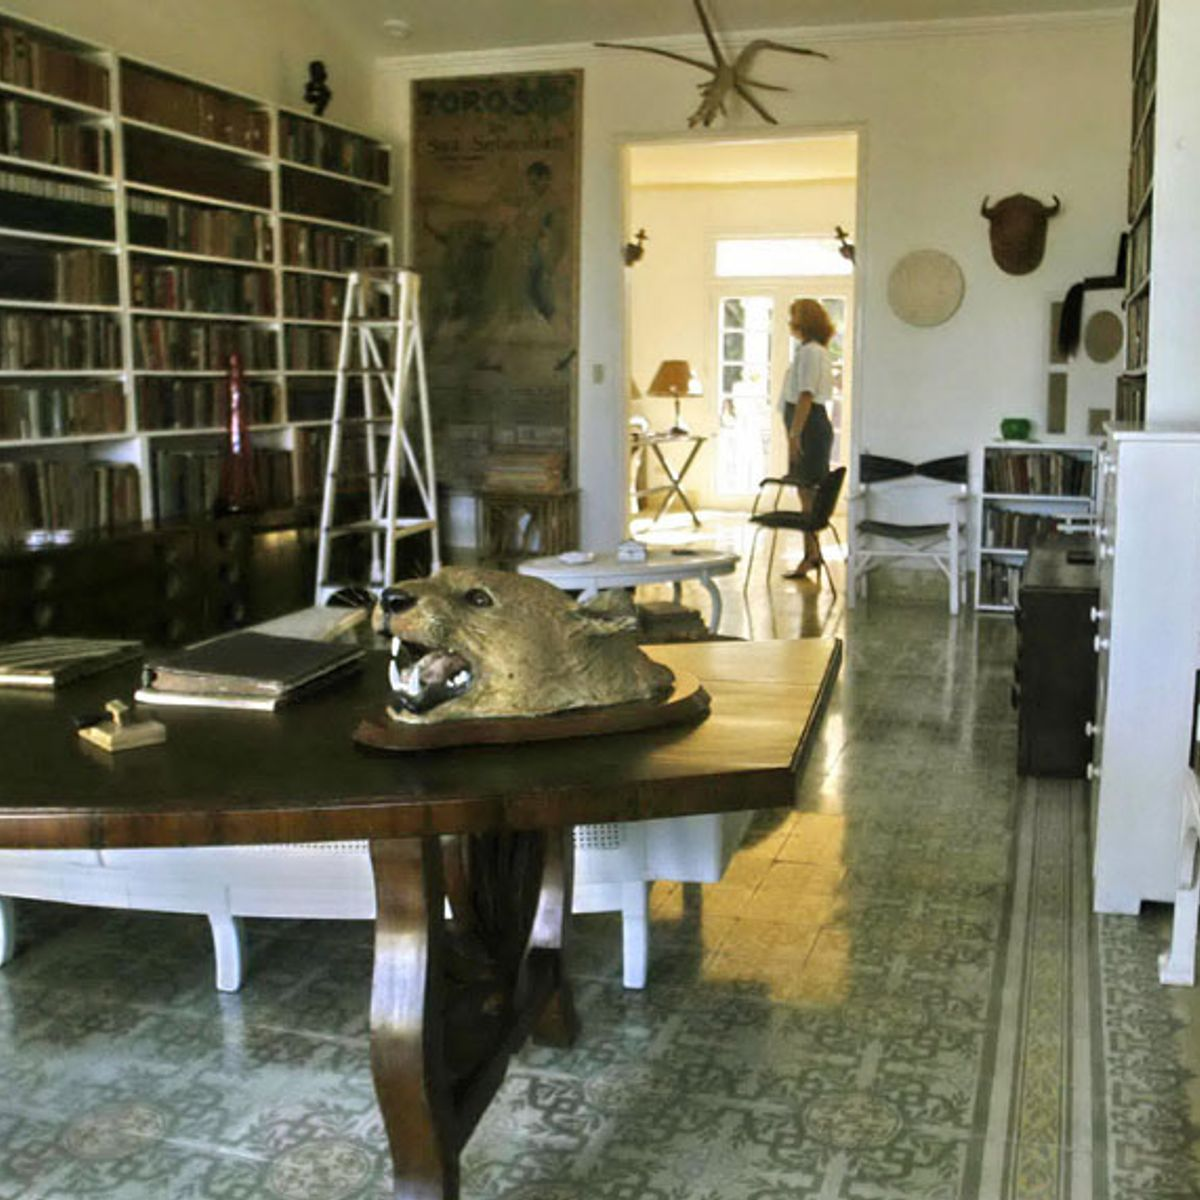 Searching for Ernest Hemingway in Cuba